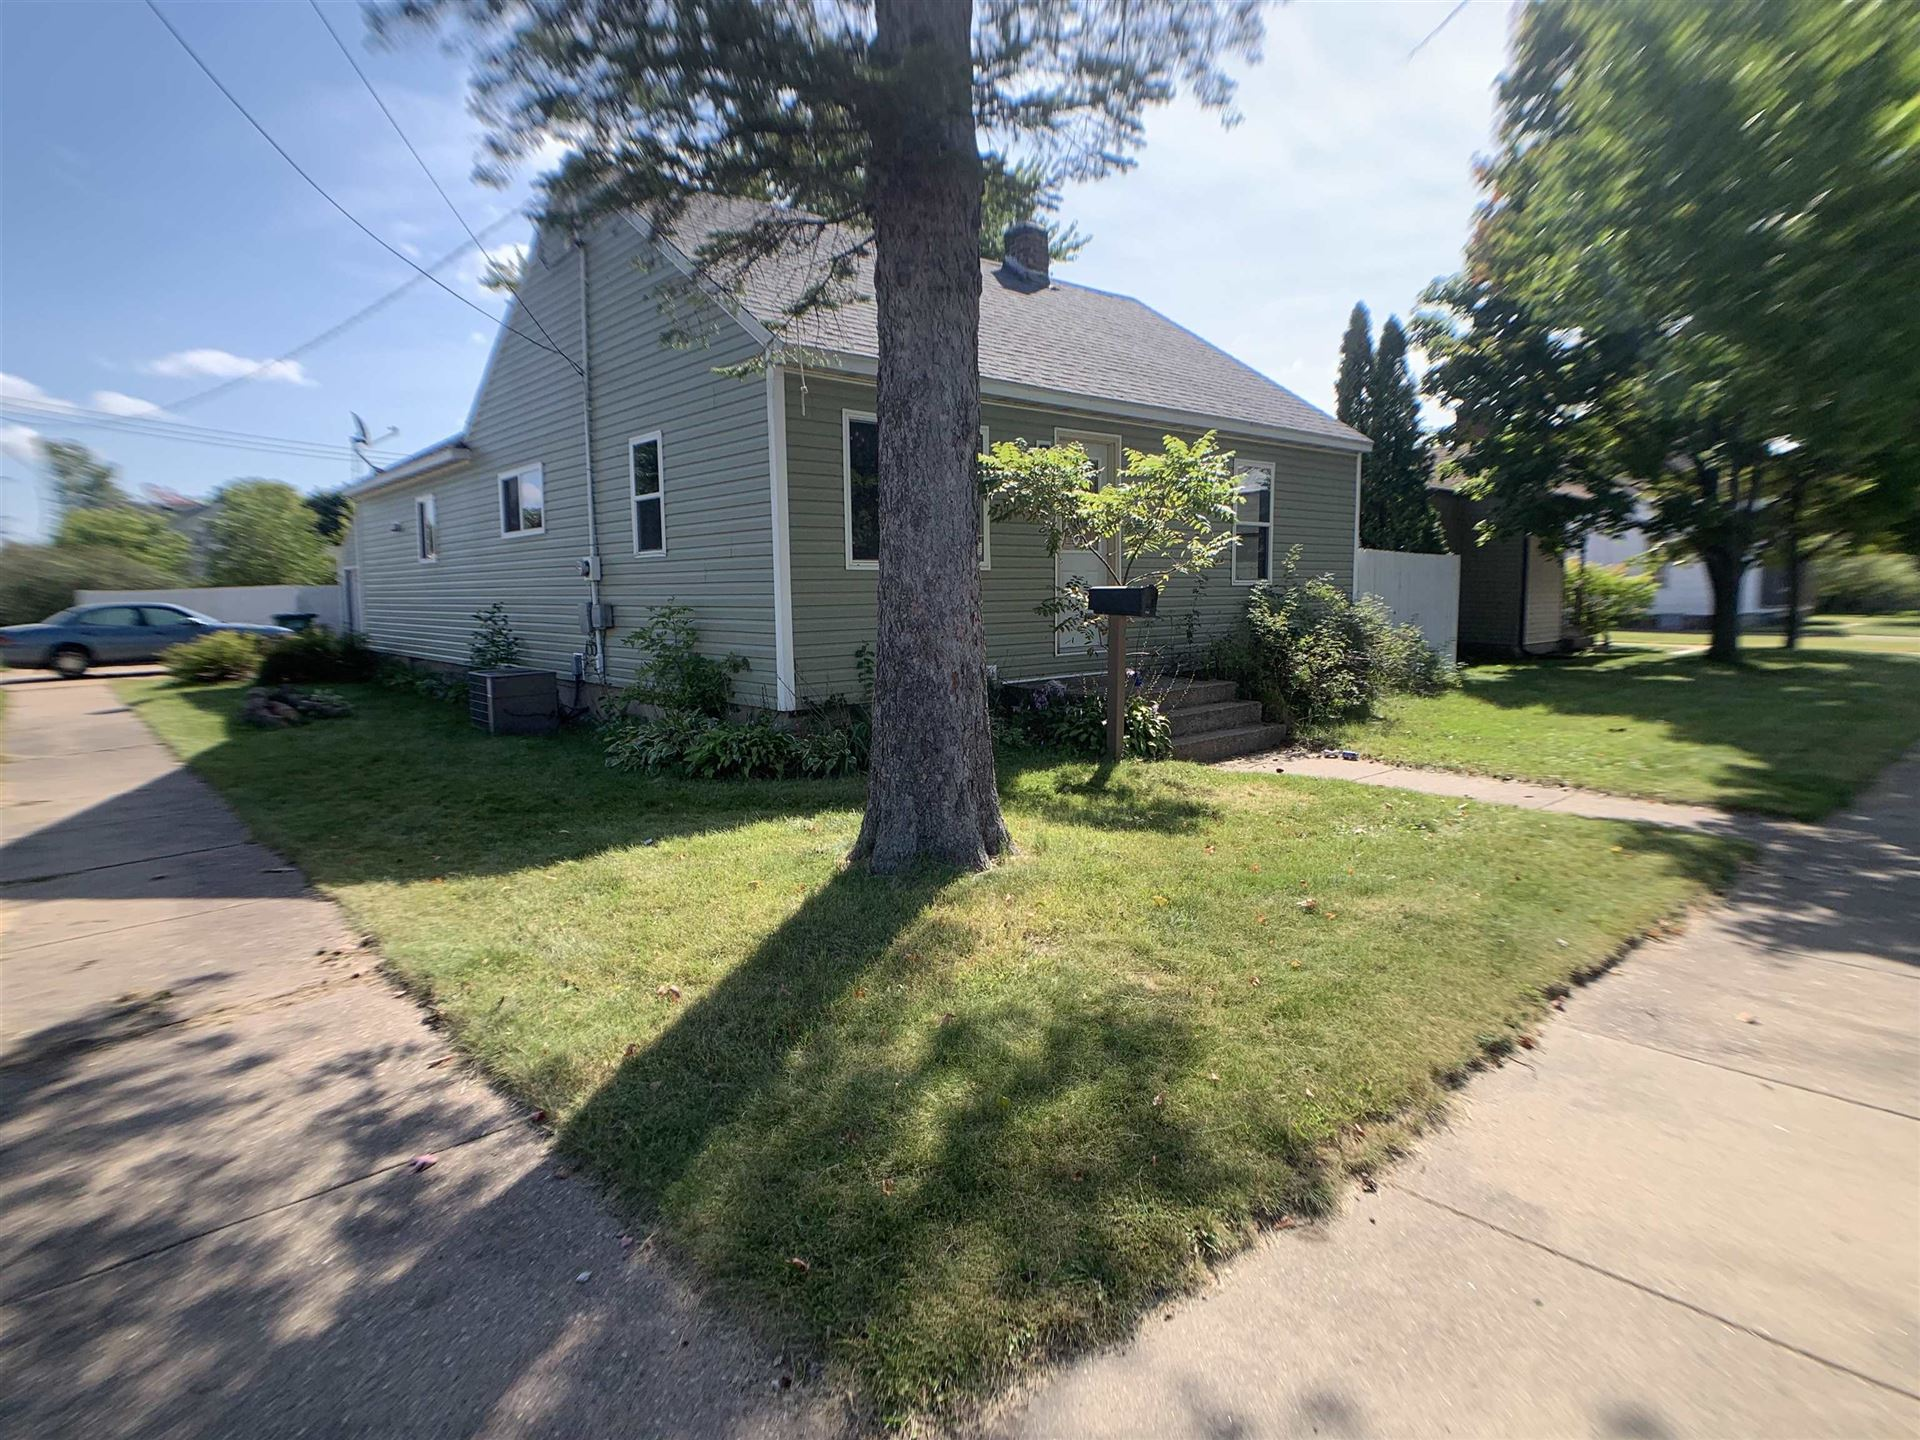 160 12th St N, Wisconsin Rapids, WI 54494 - #: 1919979